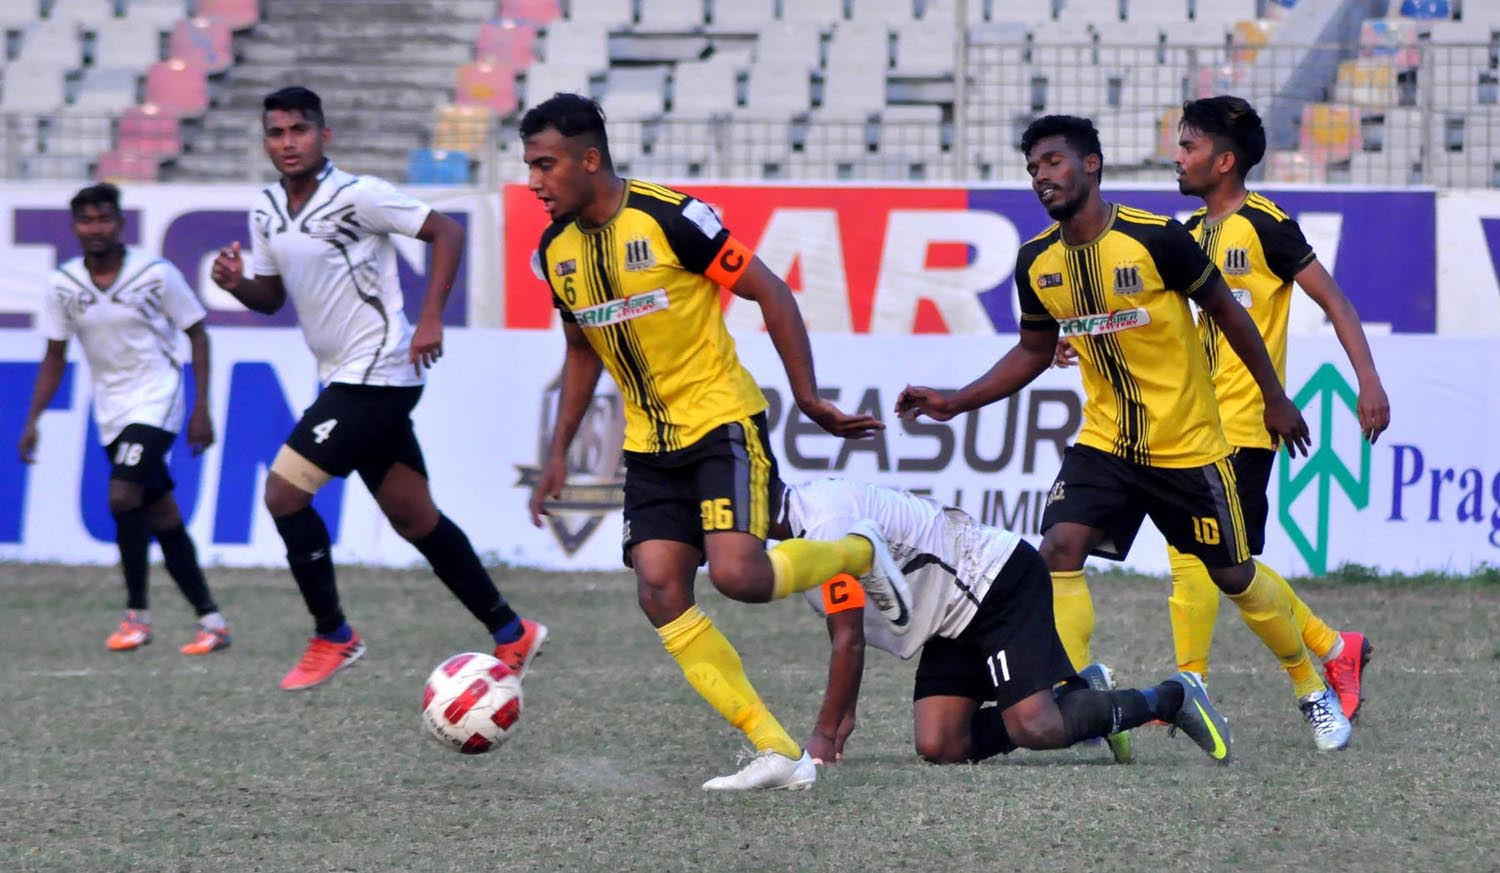 Saif SC, Arambagh KS play out goalless draw